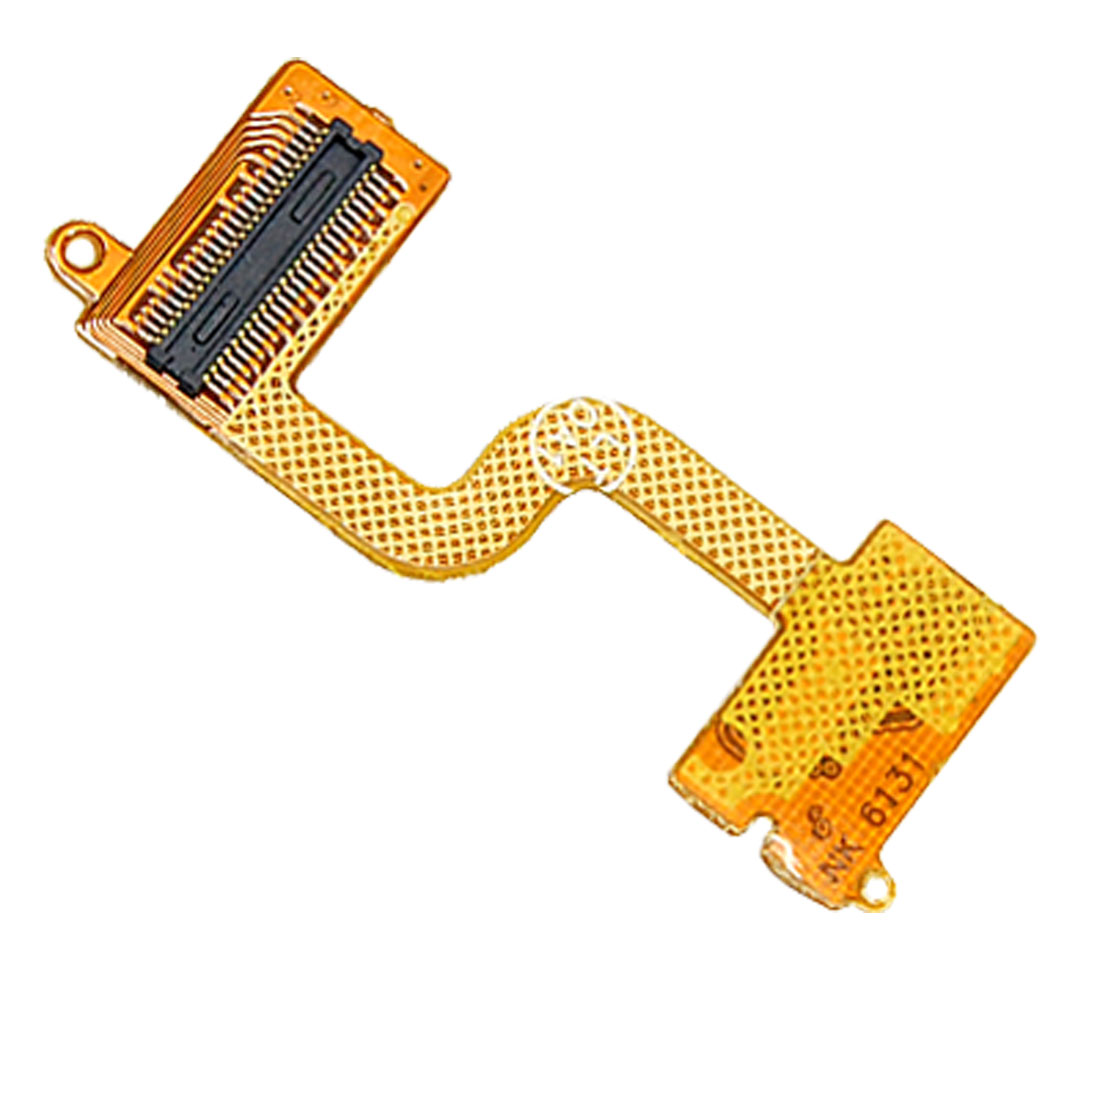 Replacement LCD Flex Ribbon Cable for Nokia 6131